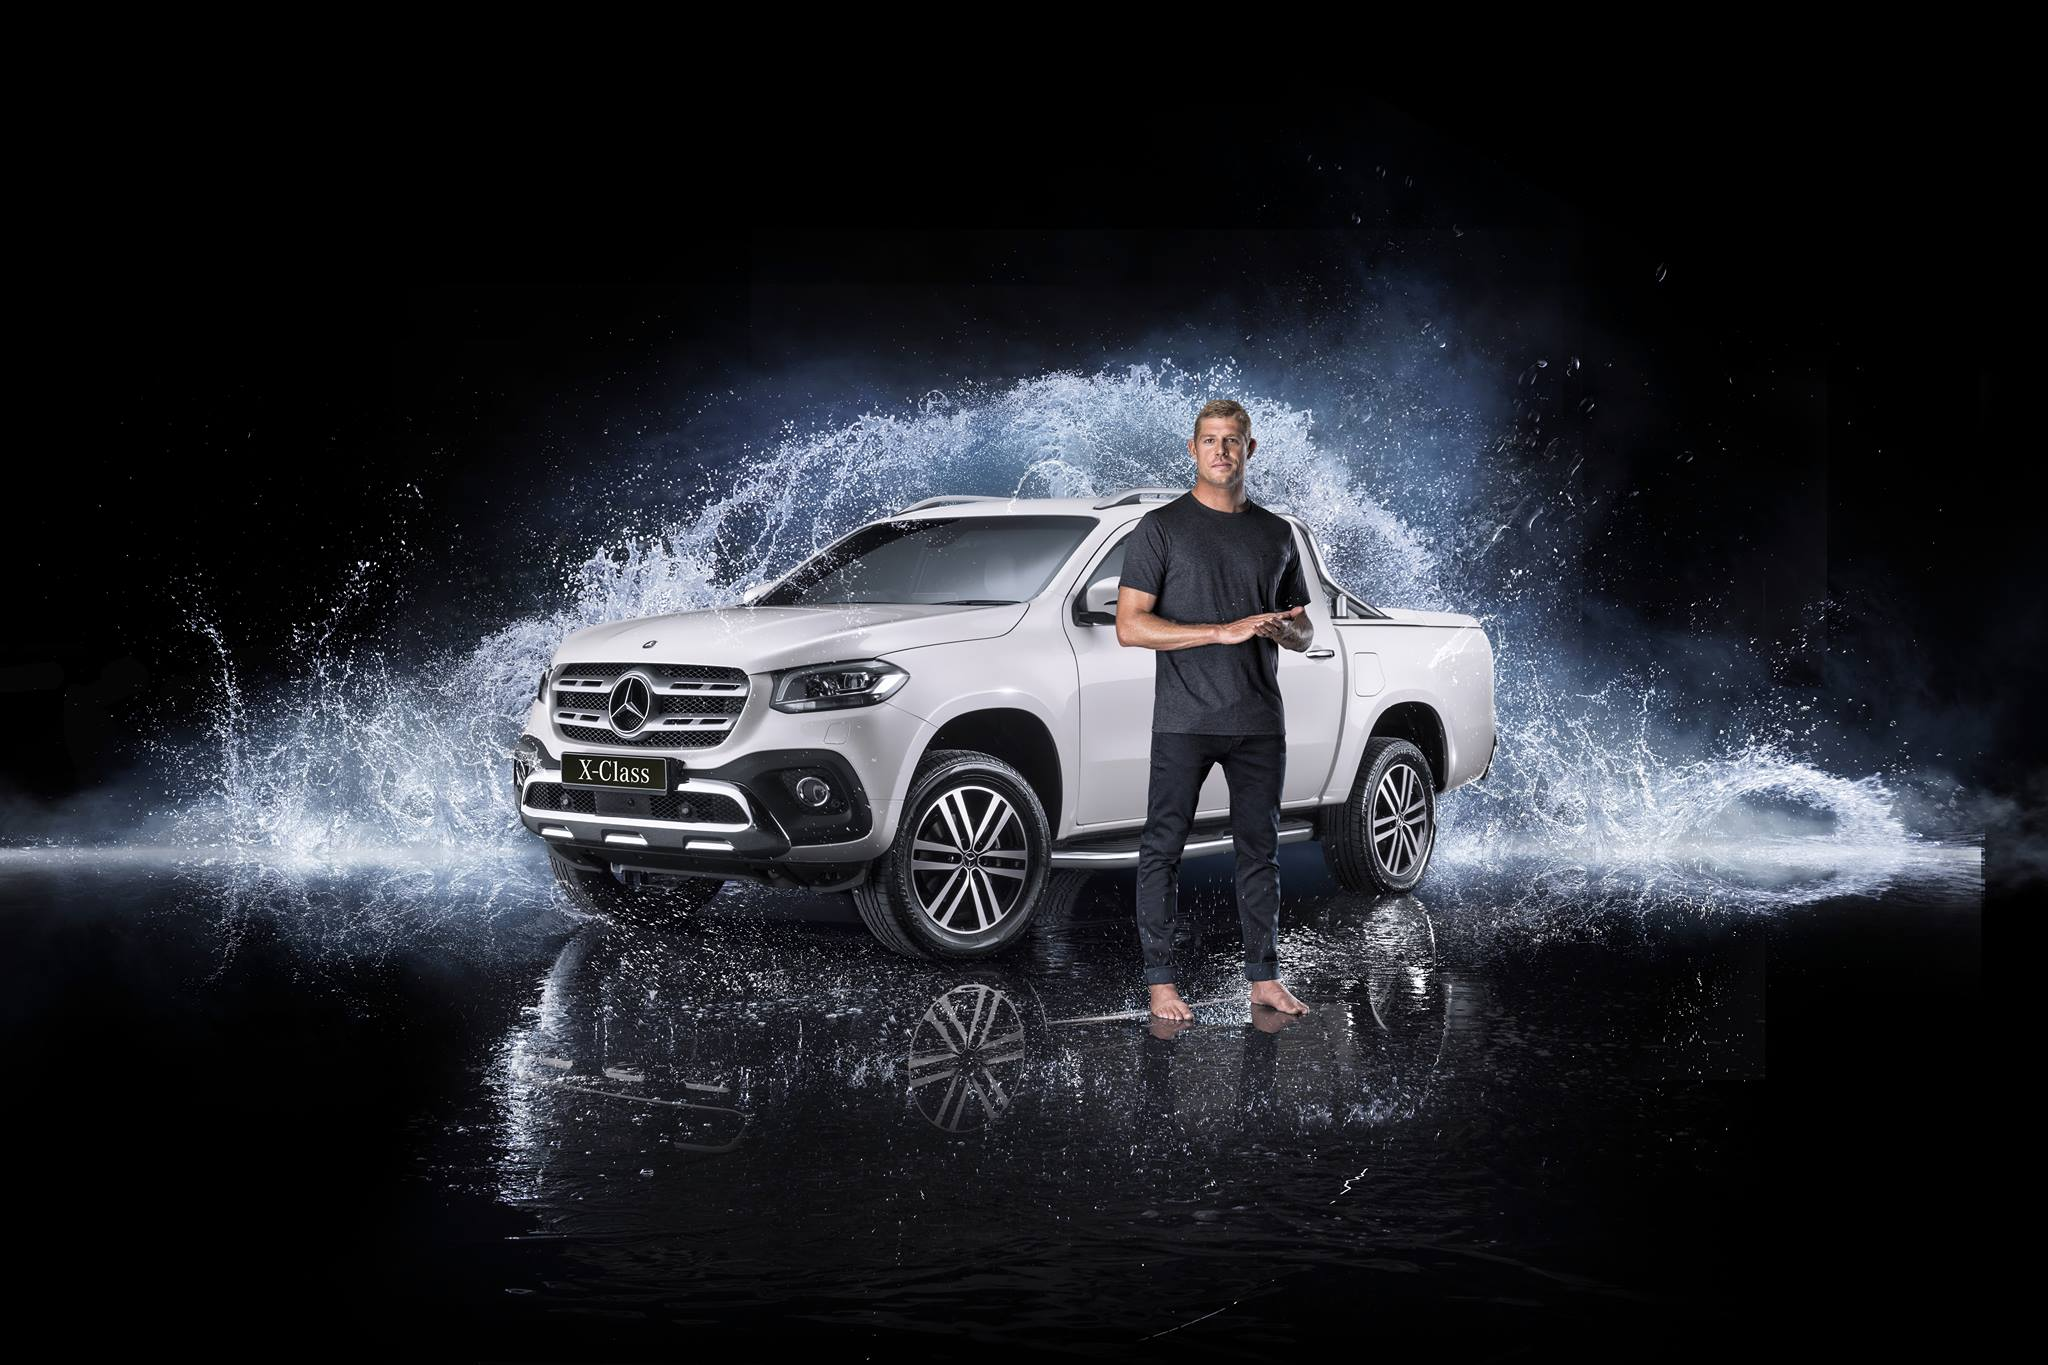 Mick fanning ambassador for mercedes benz vans australia for Mercedes benz brand ambassador